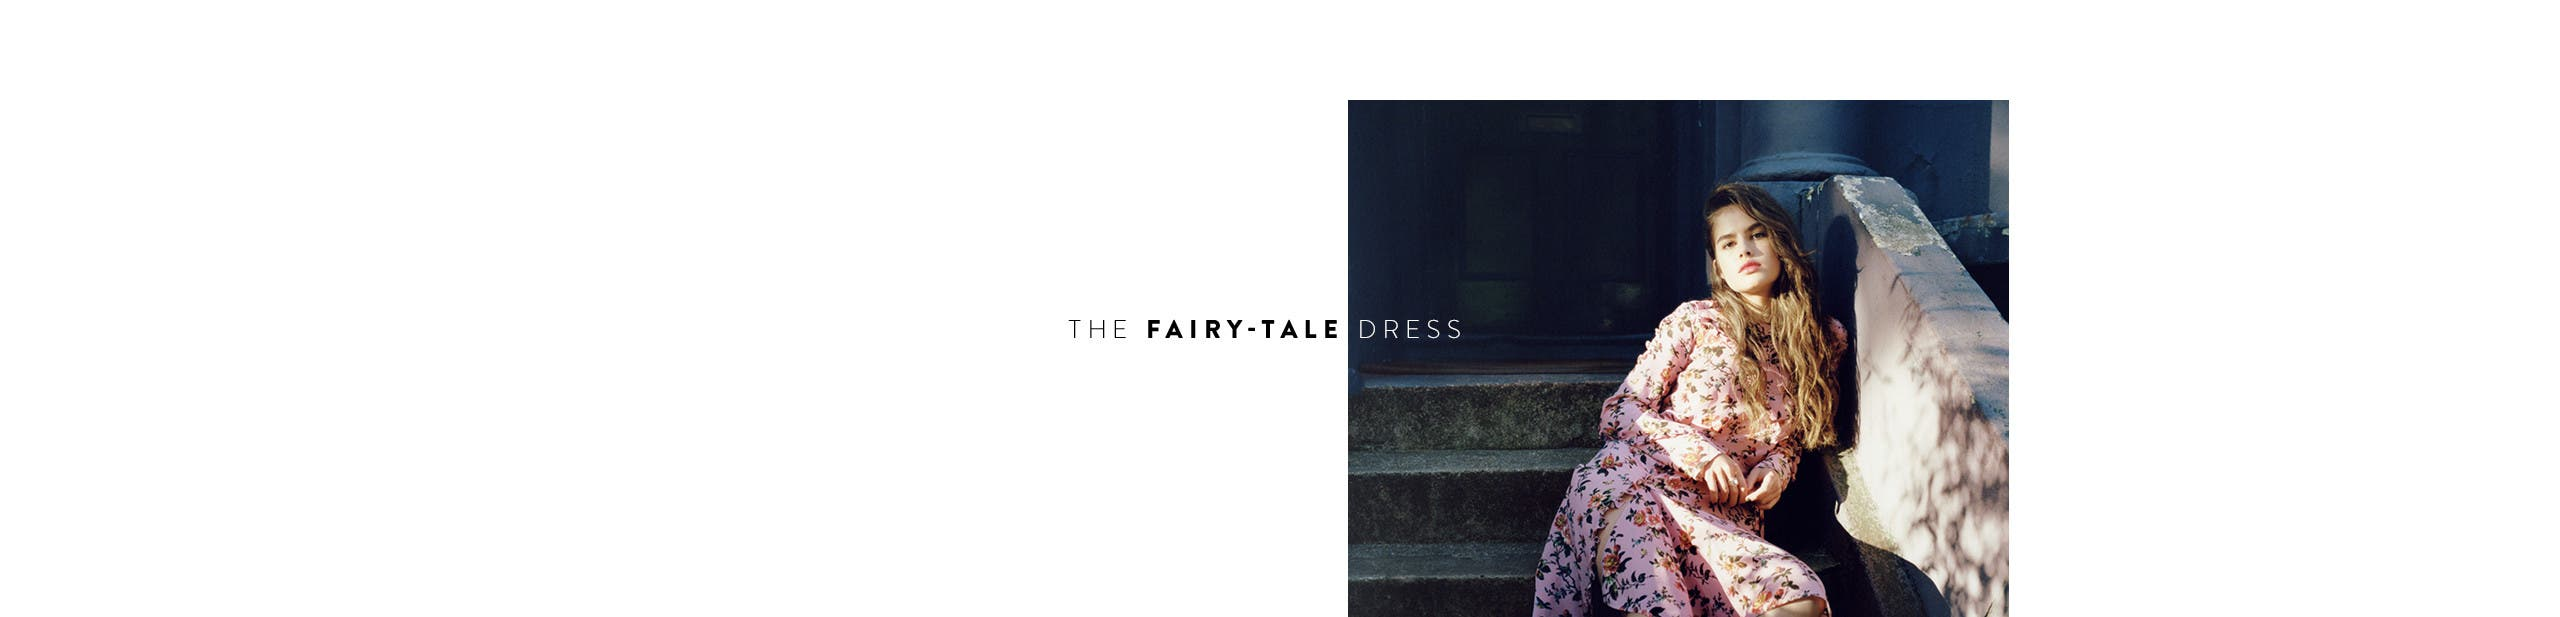 The fairy-tale dress.